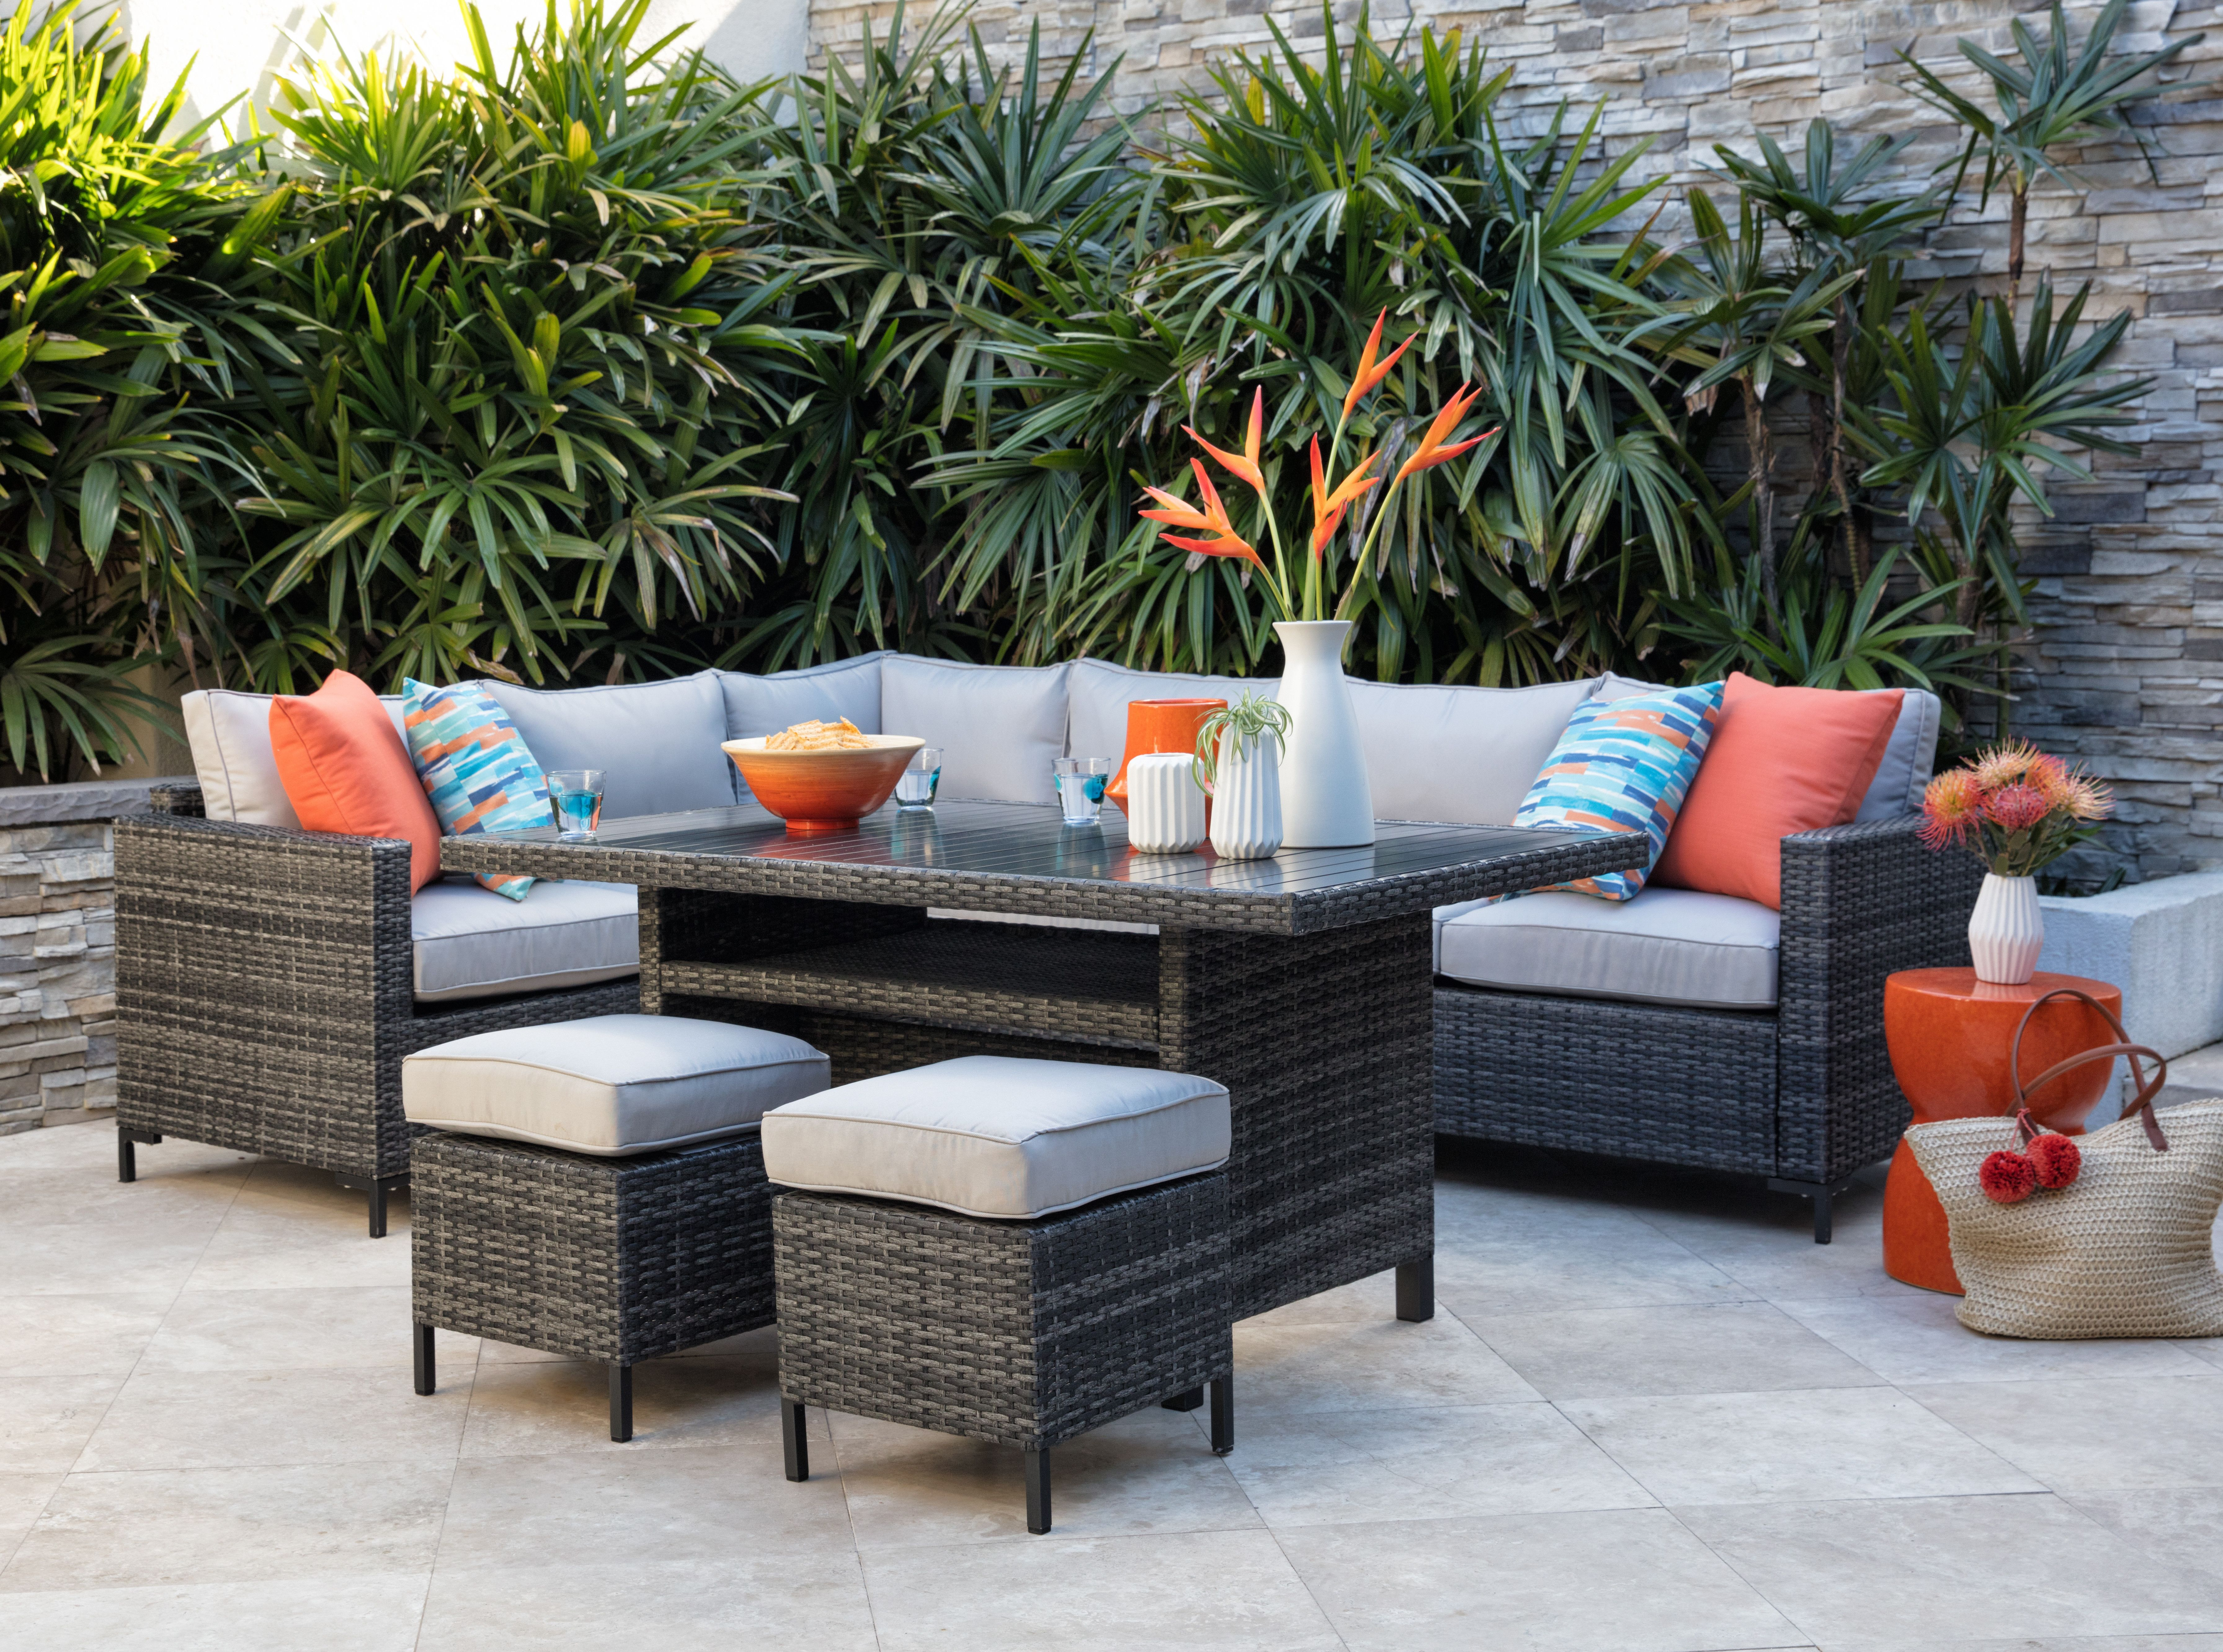 Outdoor Banquette Lounge Set A Banquette Sectional And Dining